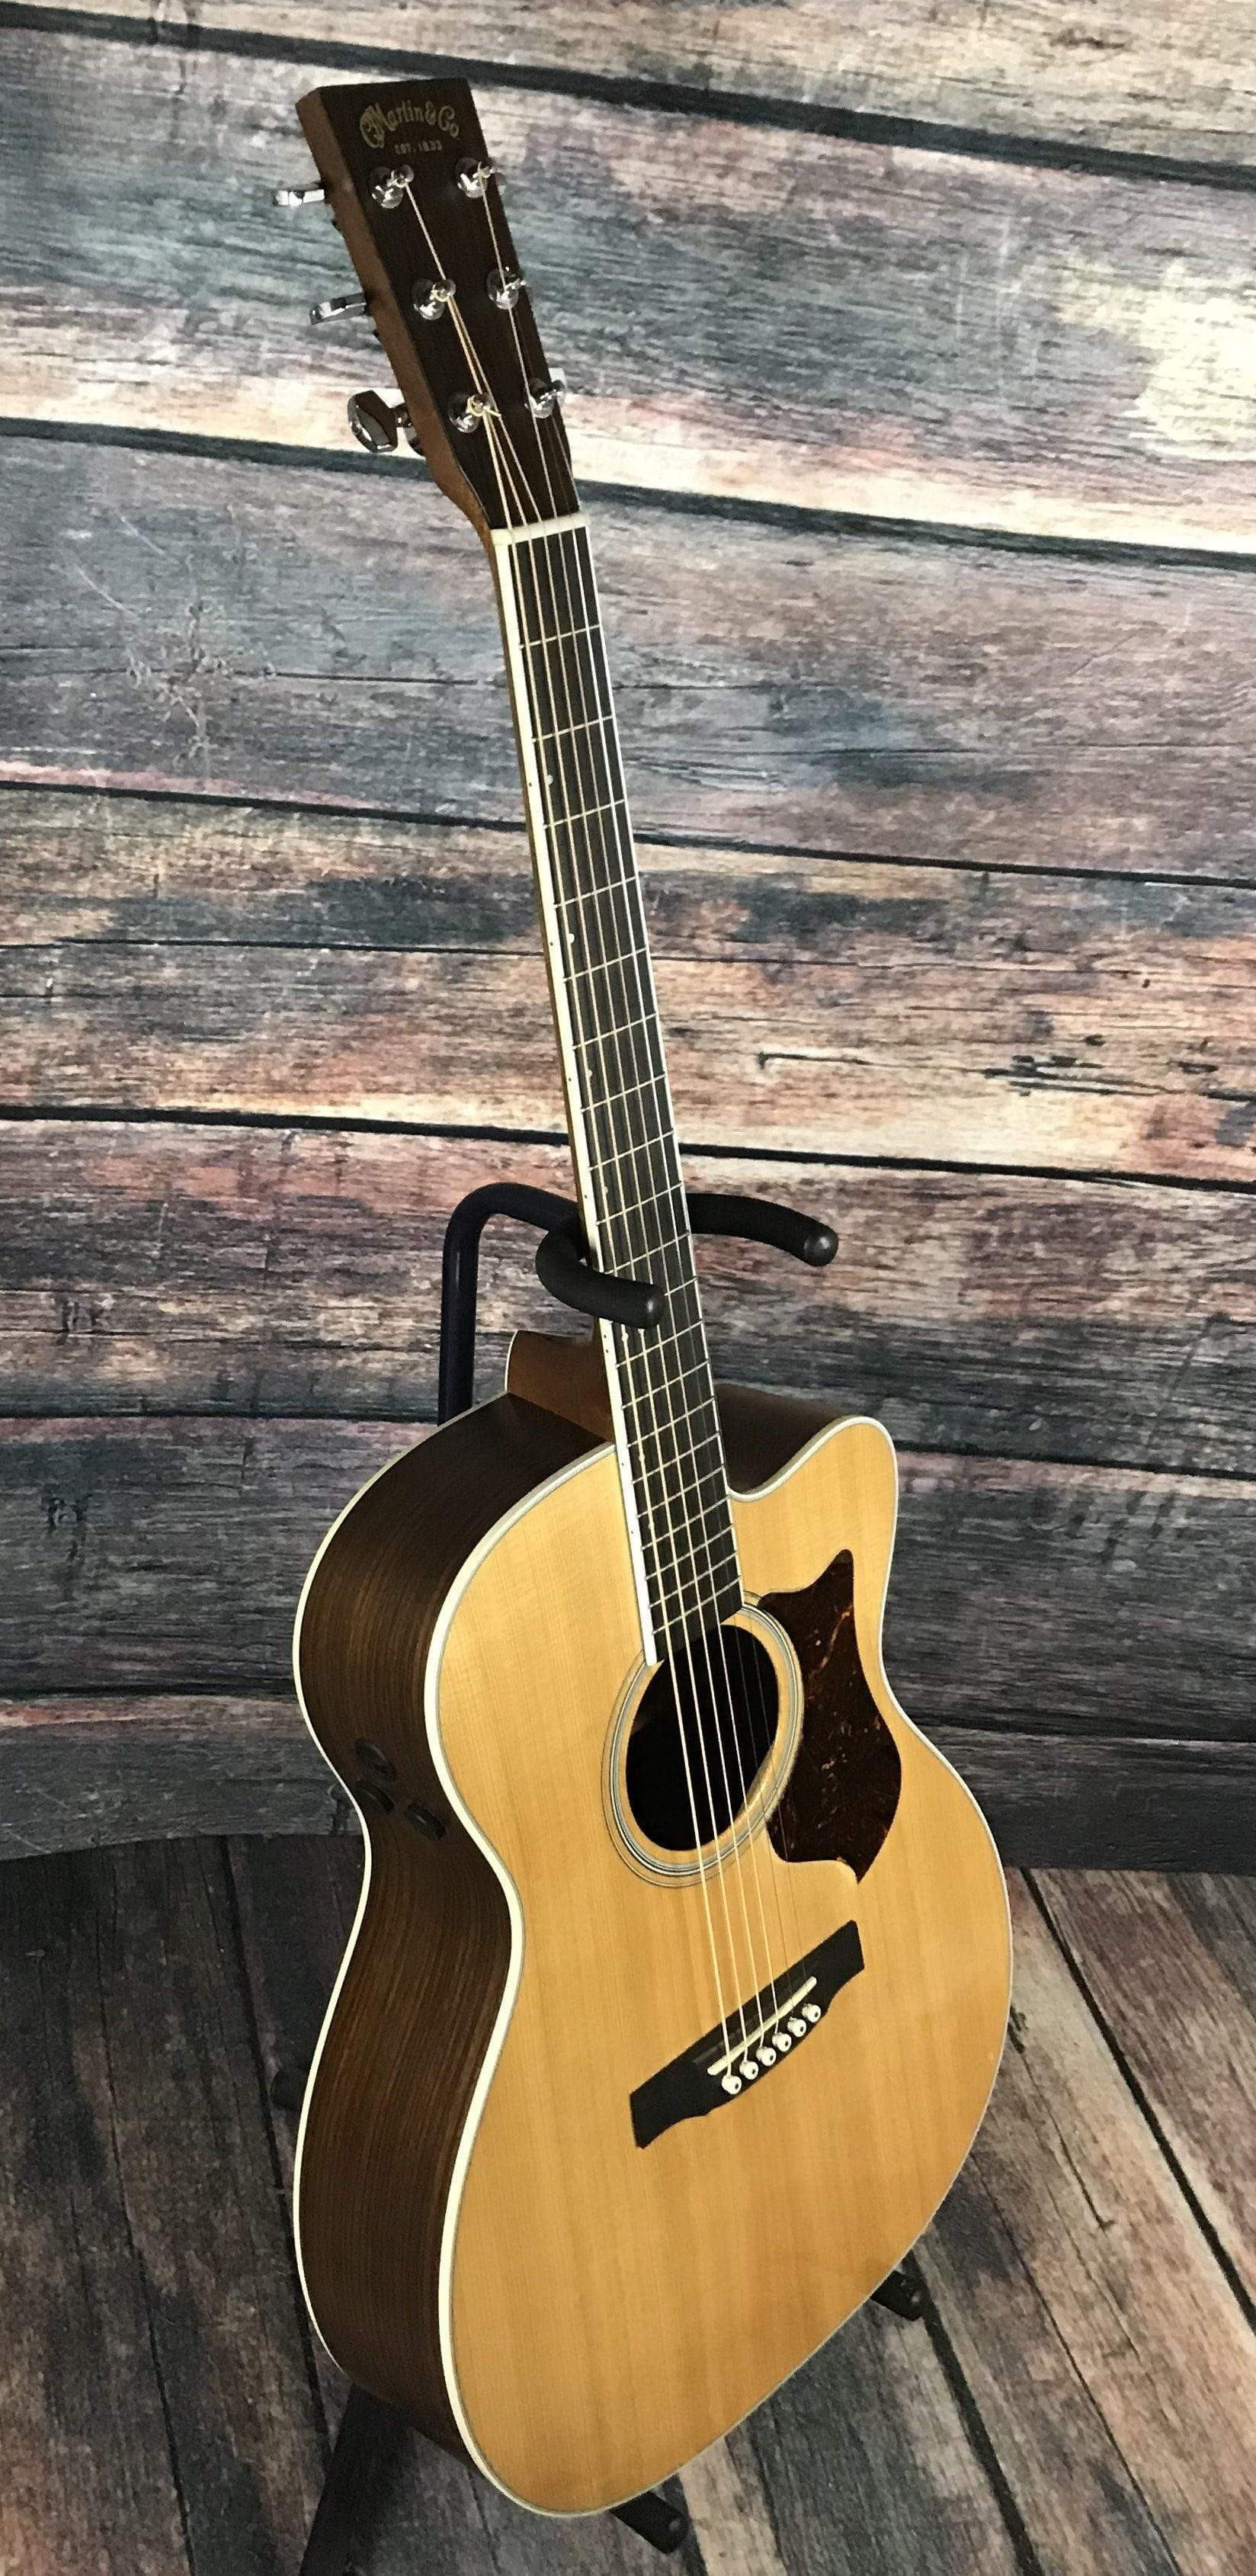 used martin 2009 omcpa3 performing artist acoustic electric guitar wit. Black Bedroom Furniture Sets. Home Design Ideas